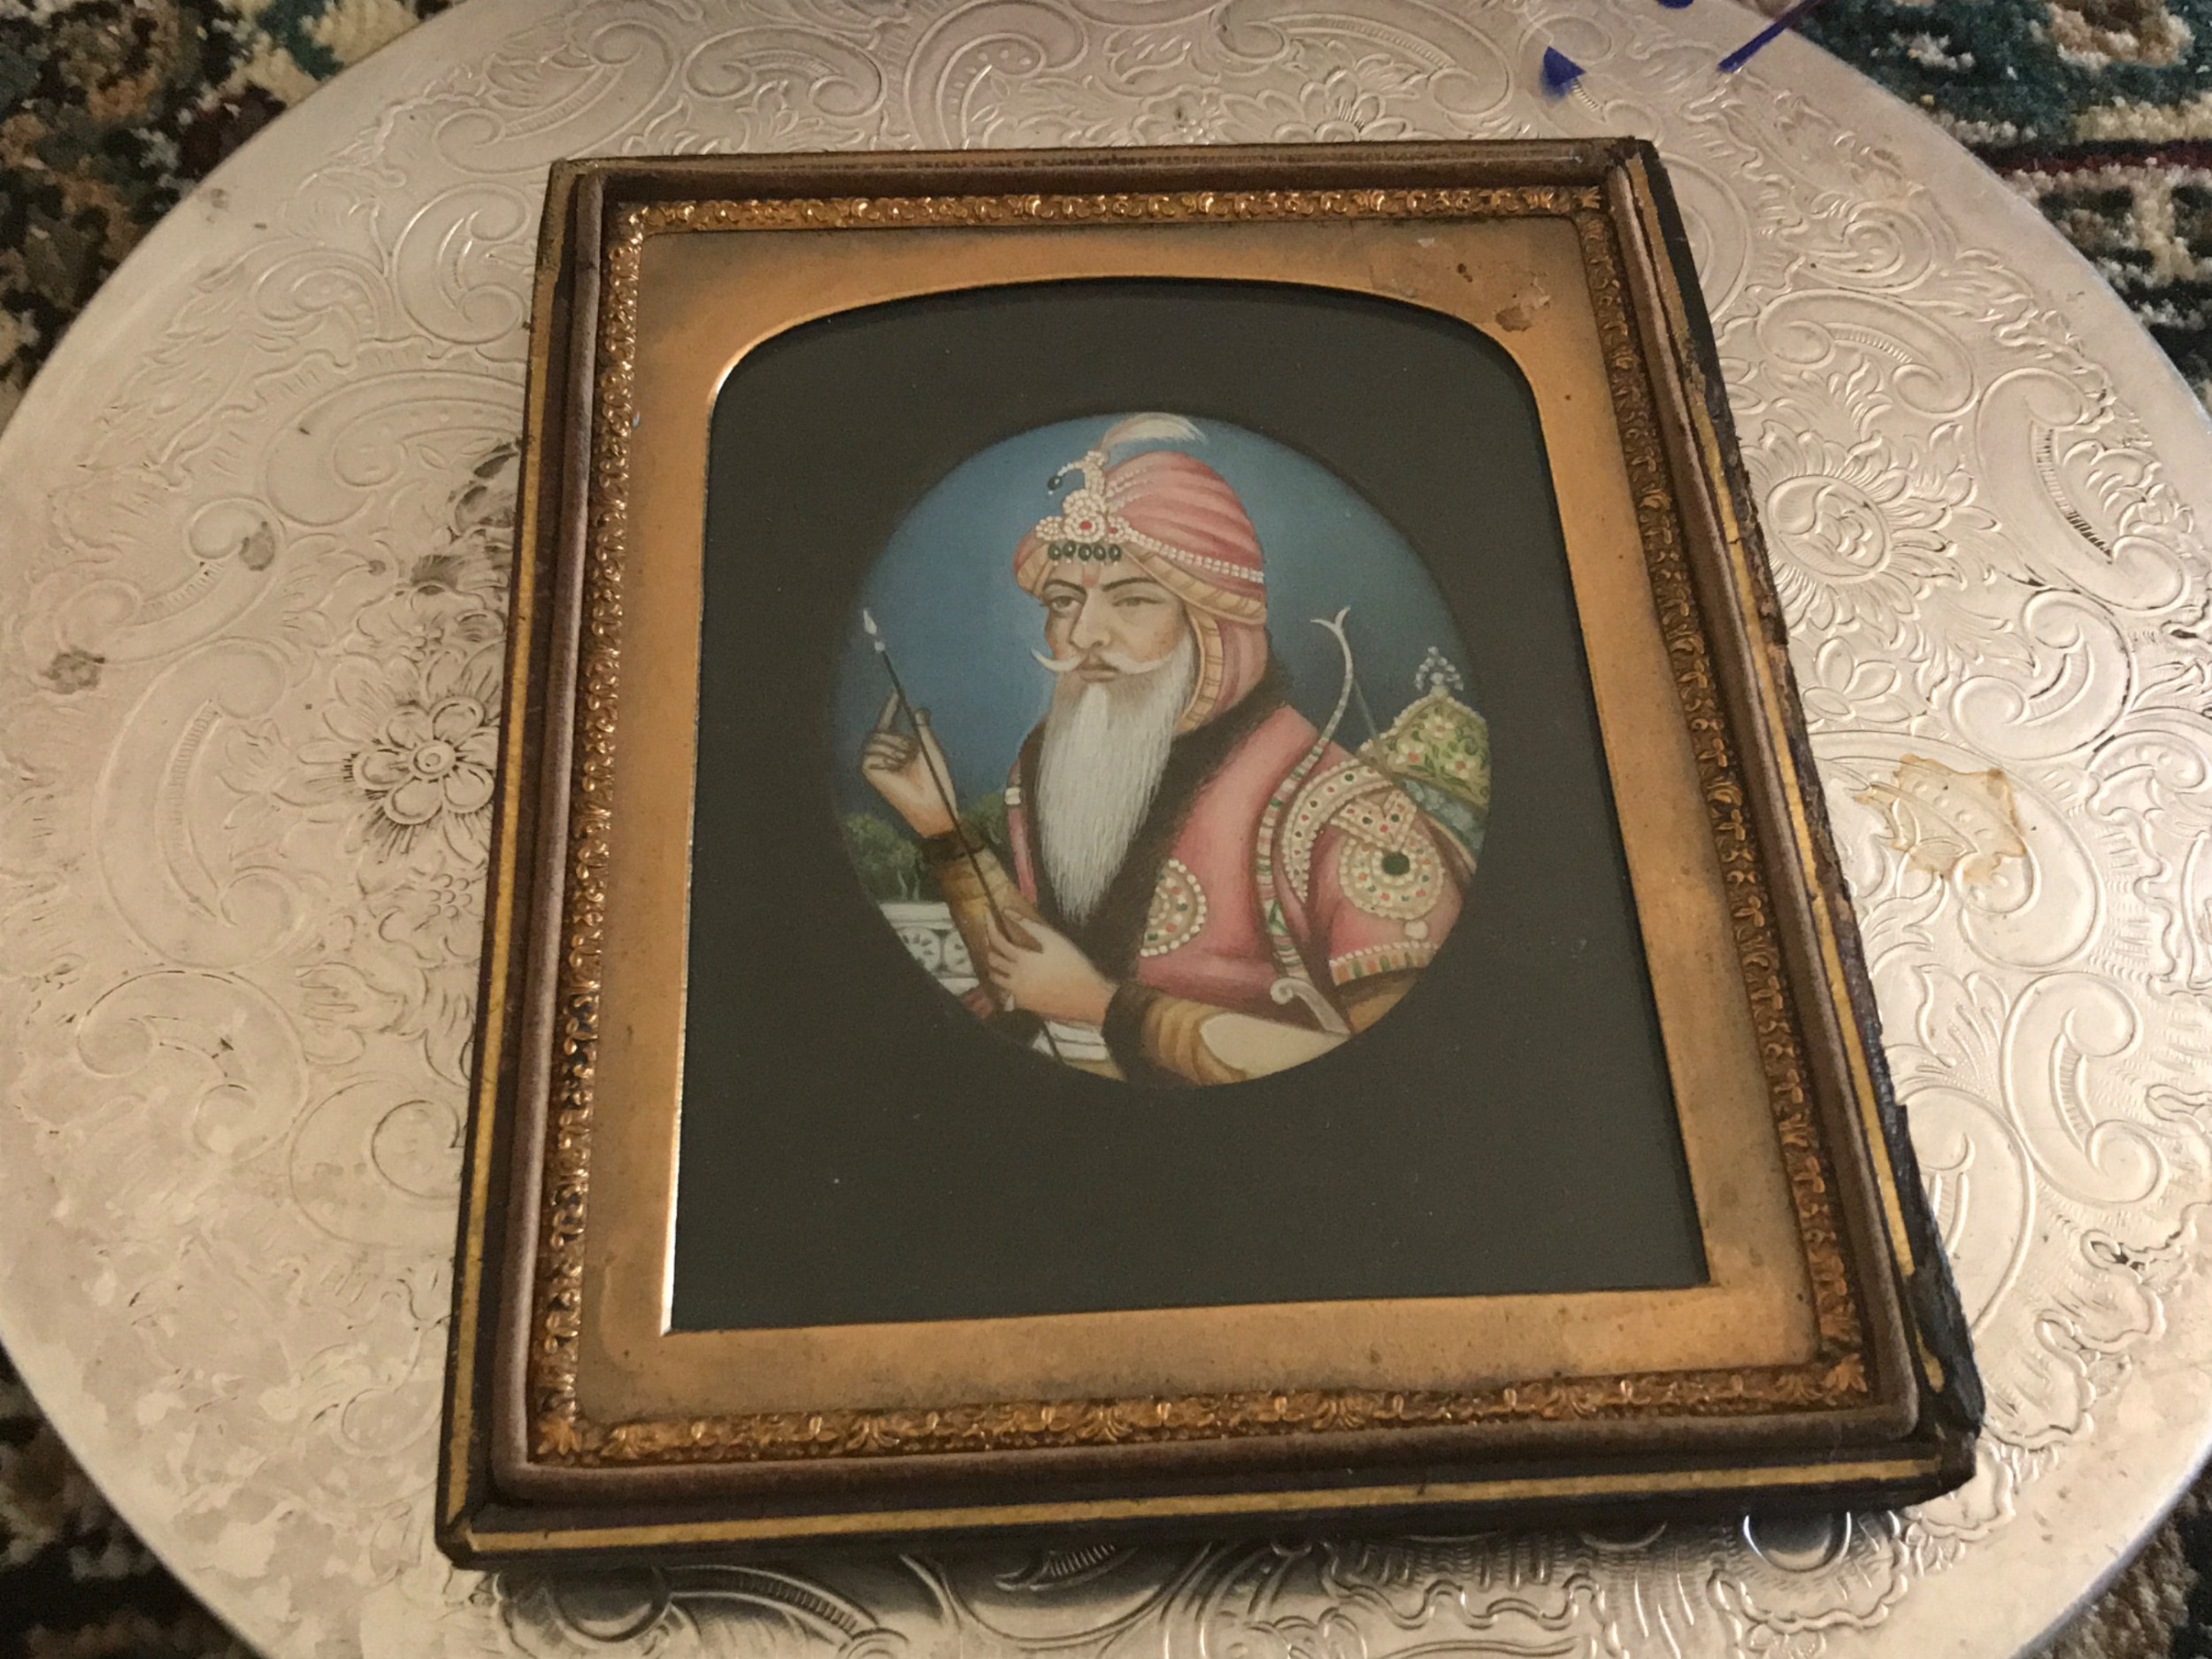 maharaja ranjeet singh miniature painting of this most famous man